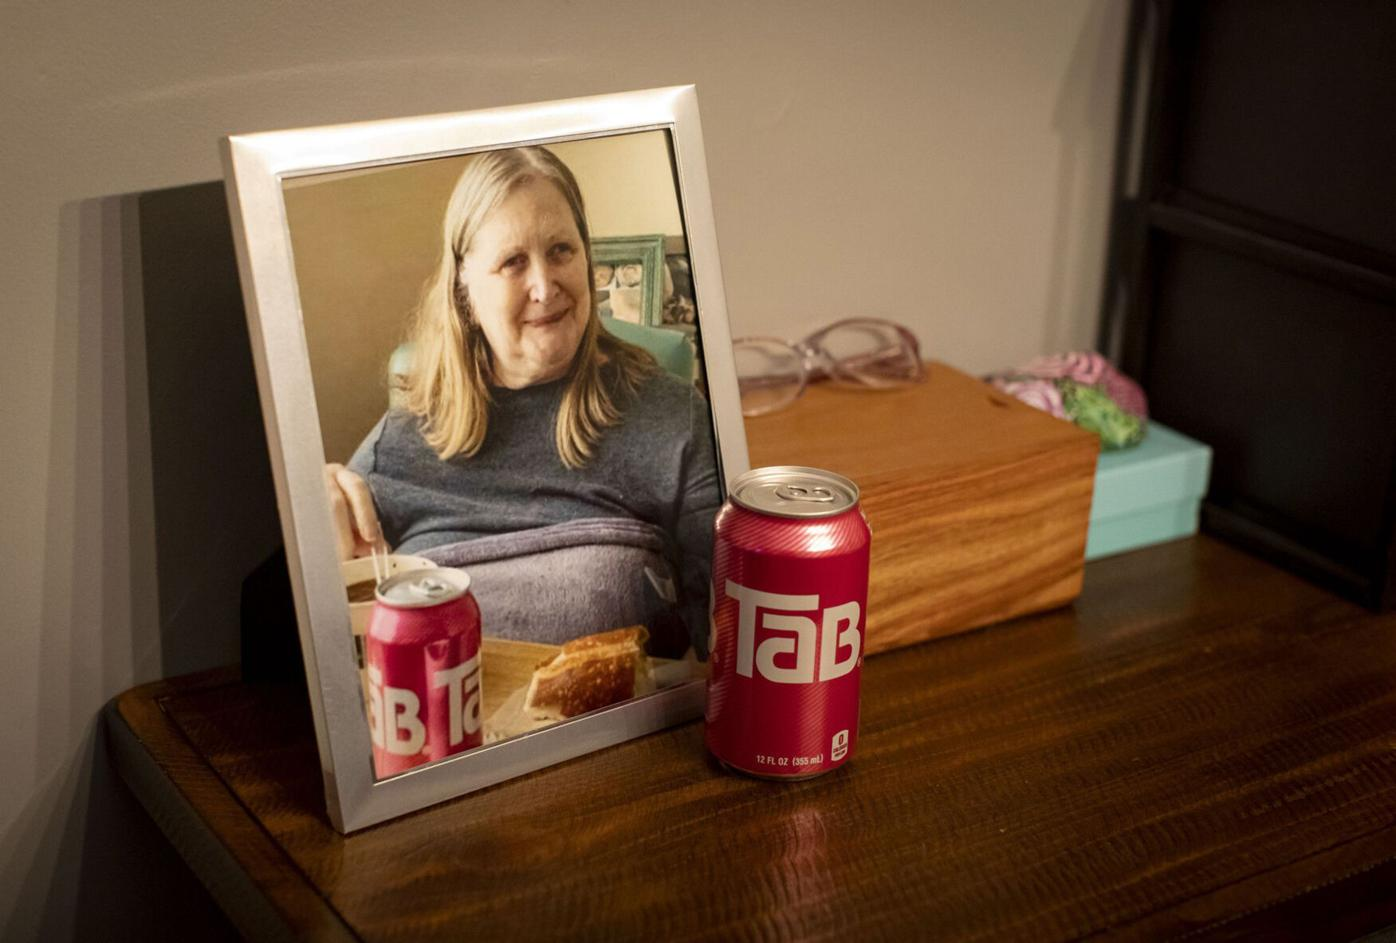 After their mom died from COVID-19, her kids give a final toast with a beloved, hard-to-find token of her youth: Tab diet soda